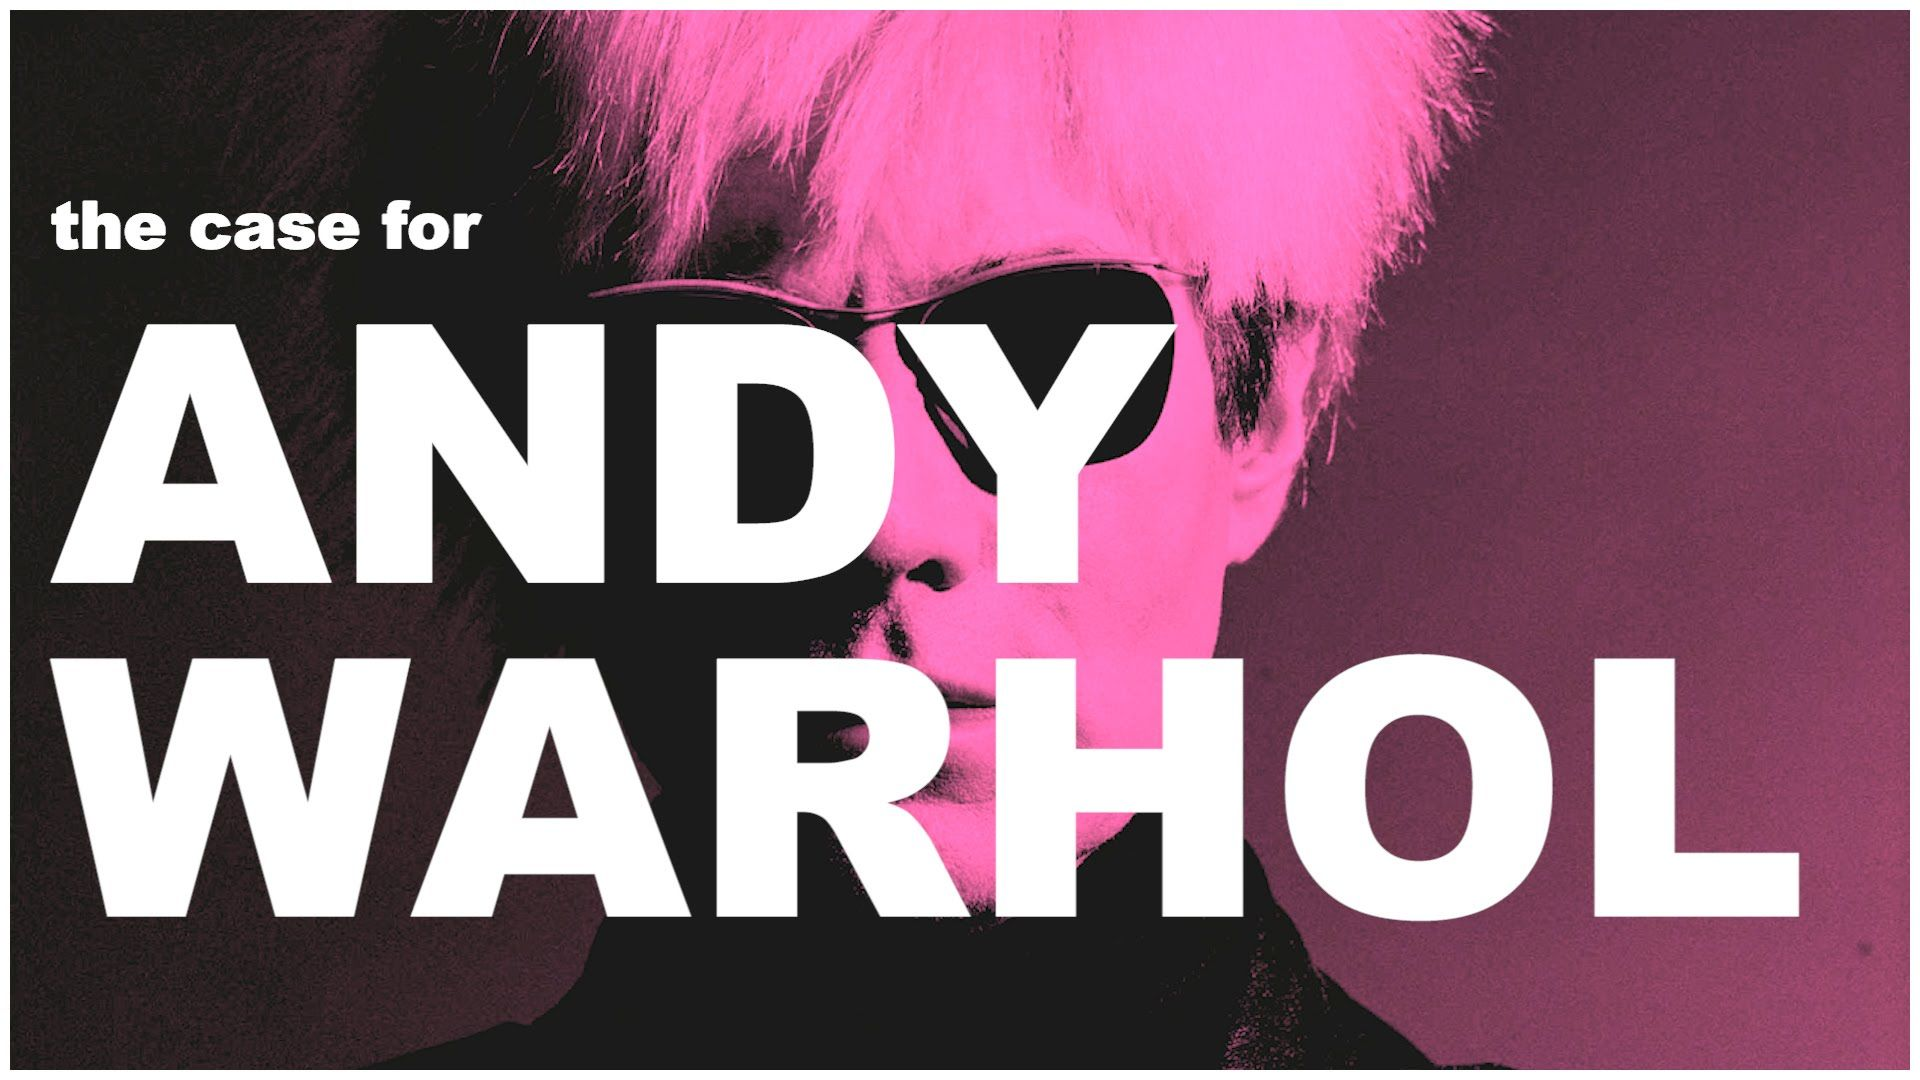 This Is A Case For Andy Warhol You Ve Heard His Name You